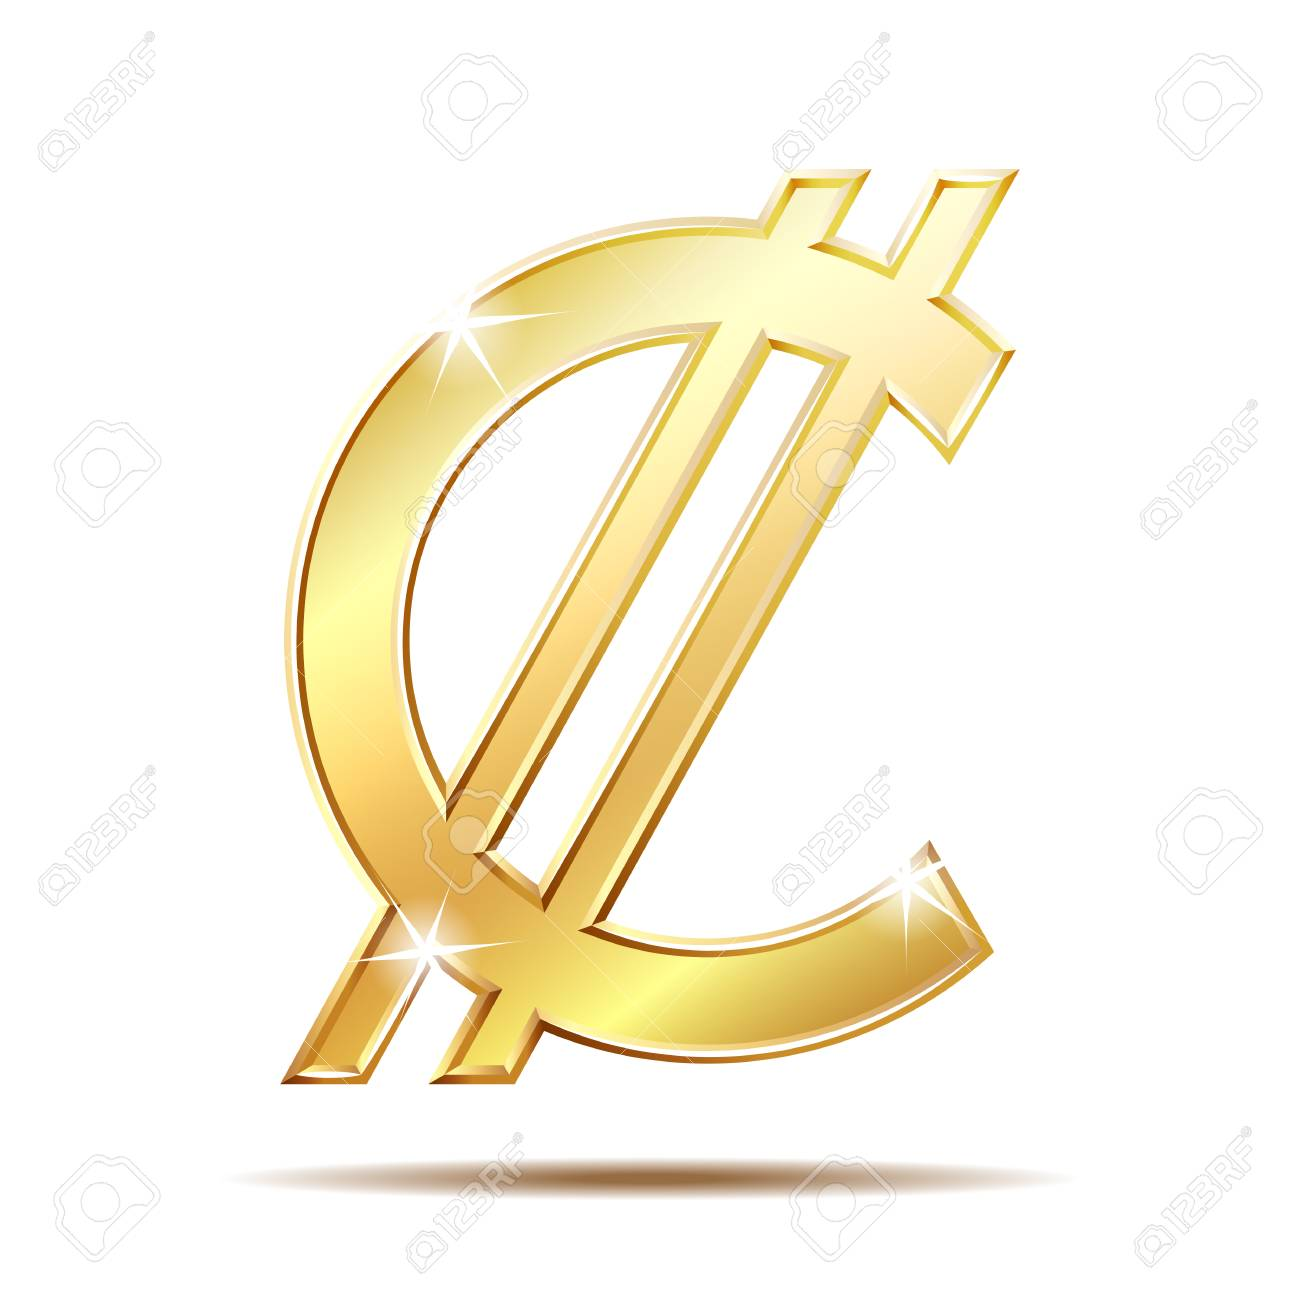 Costa Rican And Salvadoran Colon Currency Symbol Golden Money